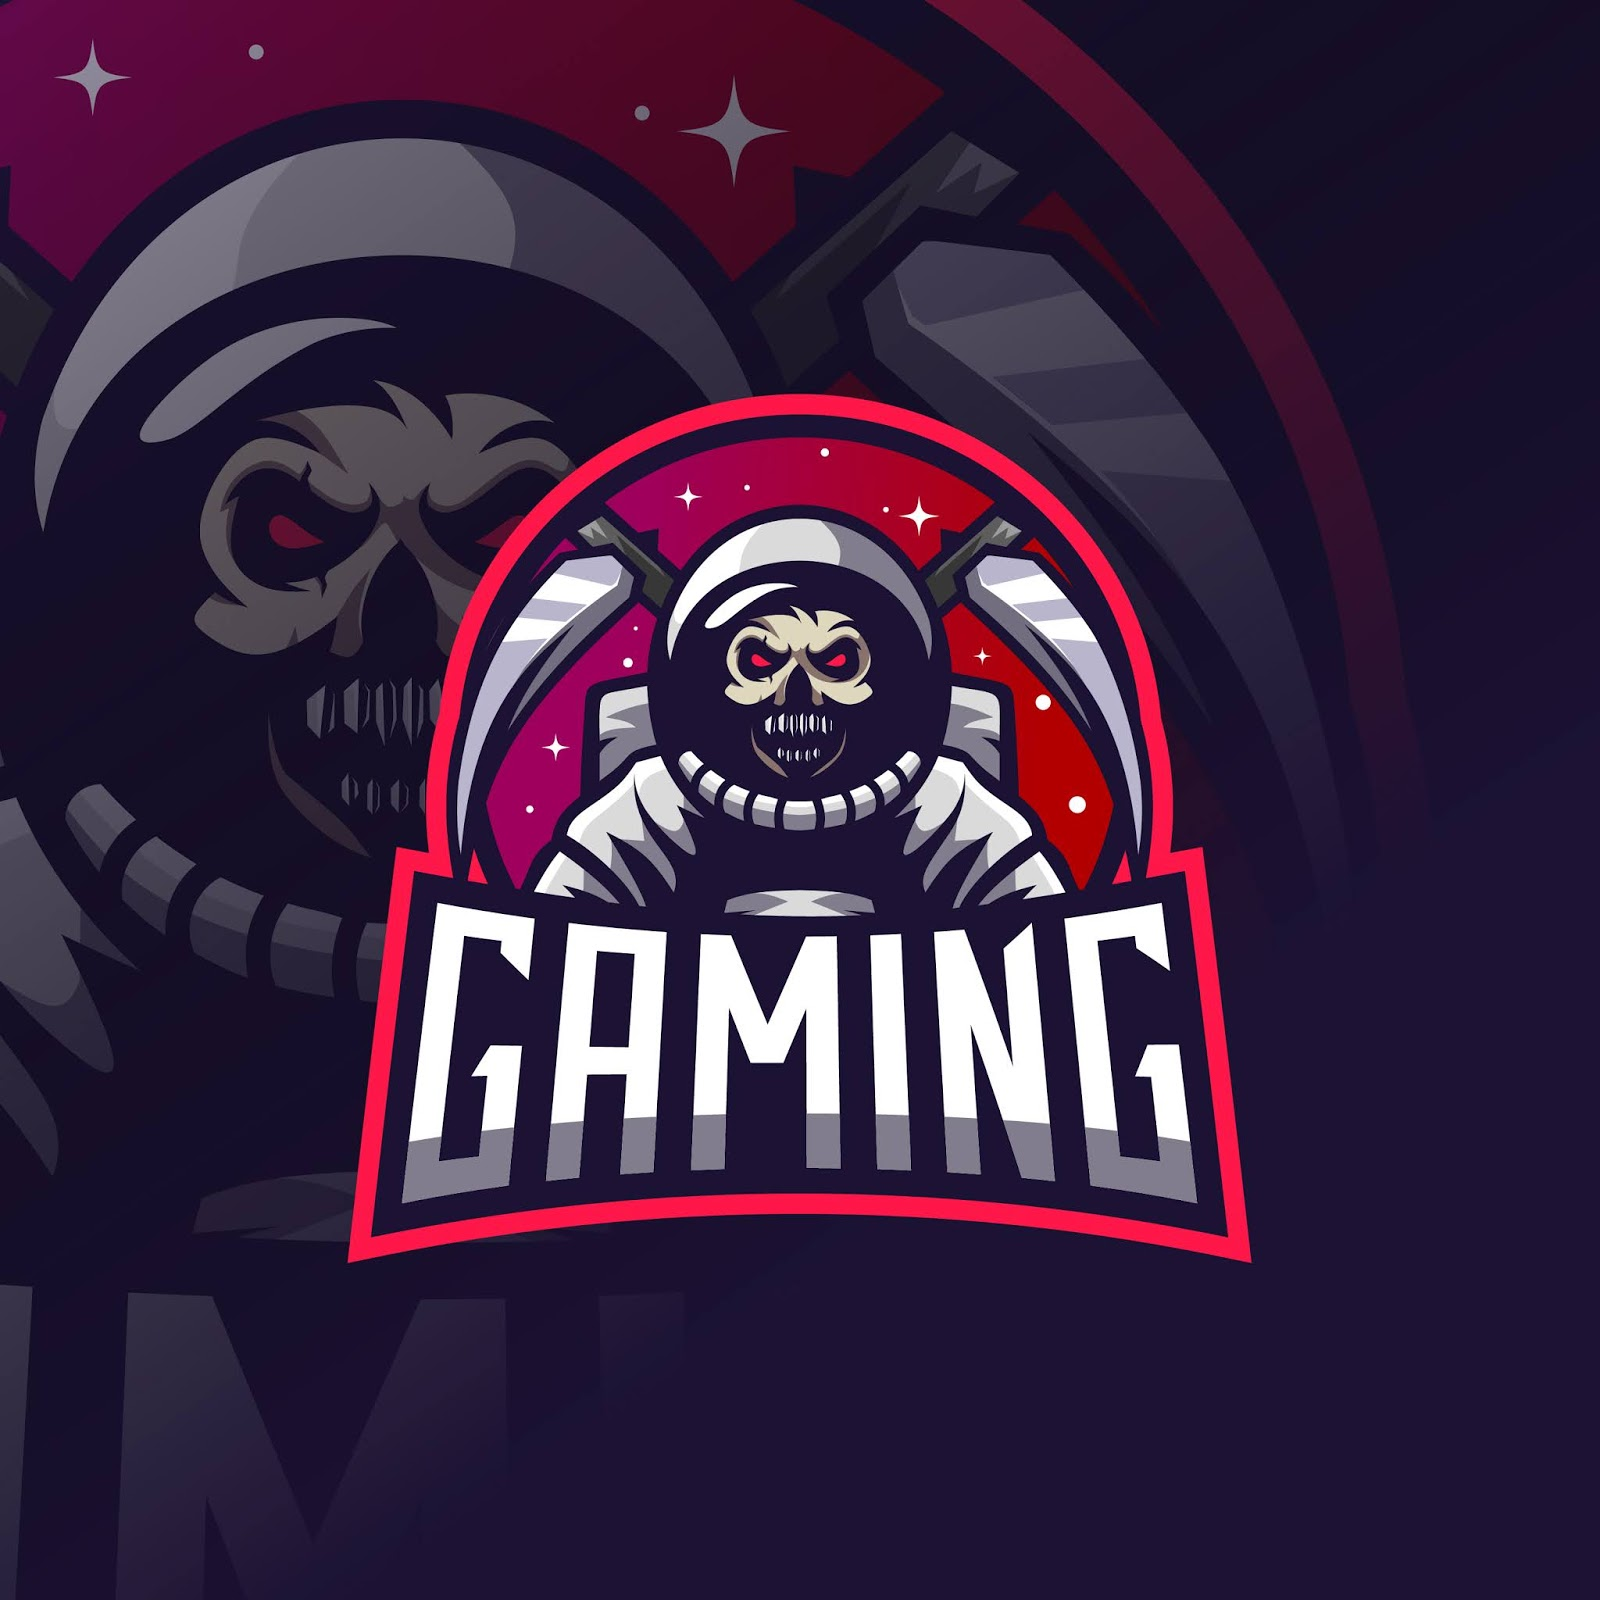 Astronaut Skull Reaper Esport Logo Free Download Vector CDR, AI, EPS and PNG Formats